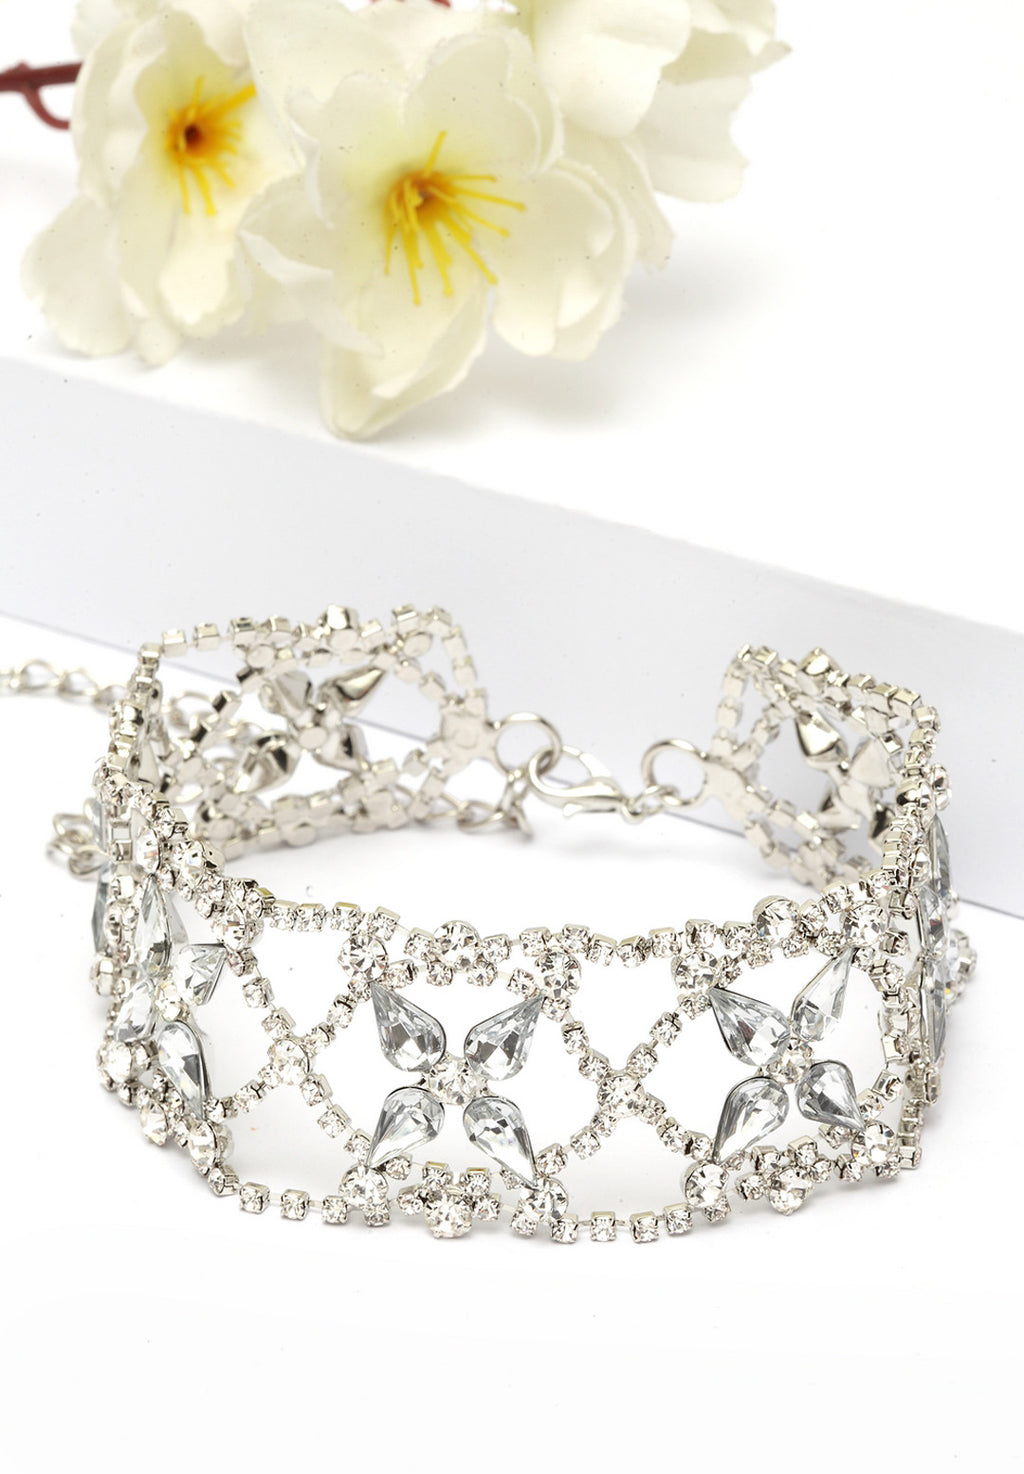 Avant-Garde Paris Contemporary Crystal Bling Choker